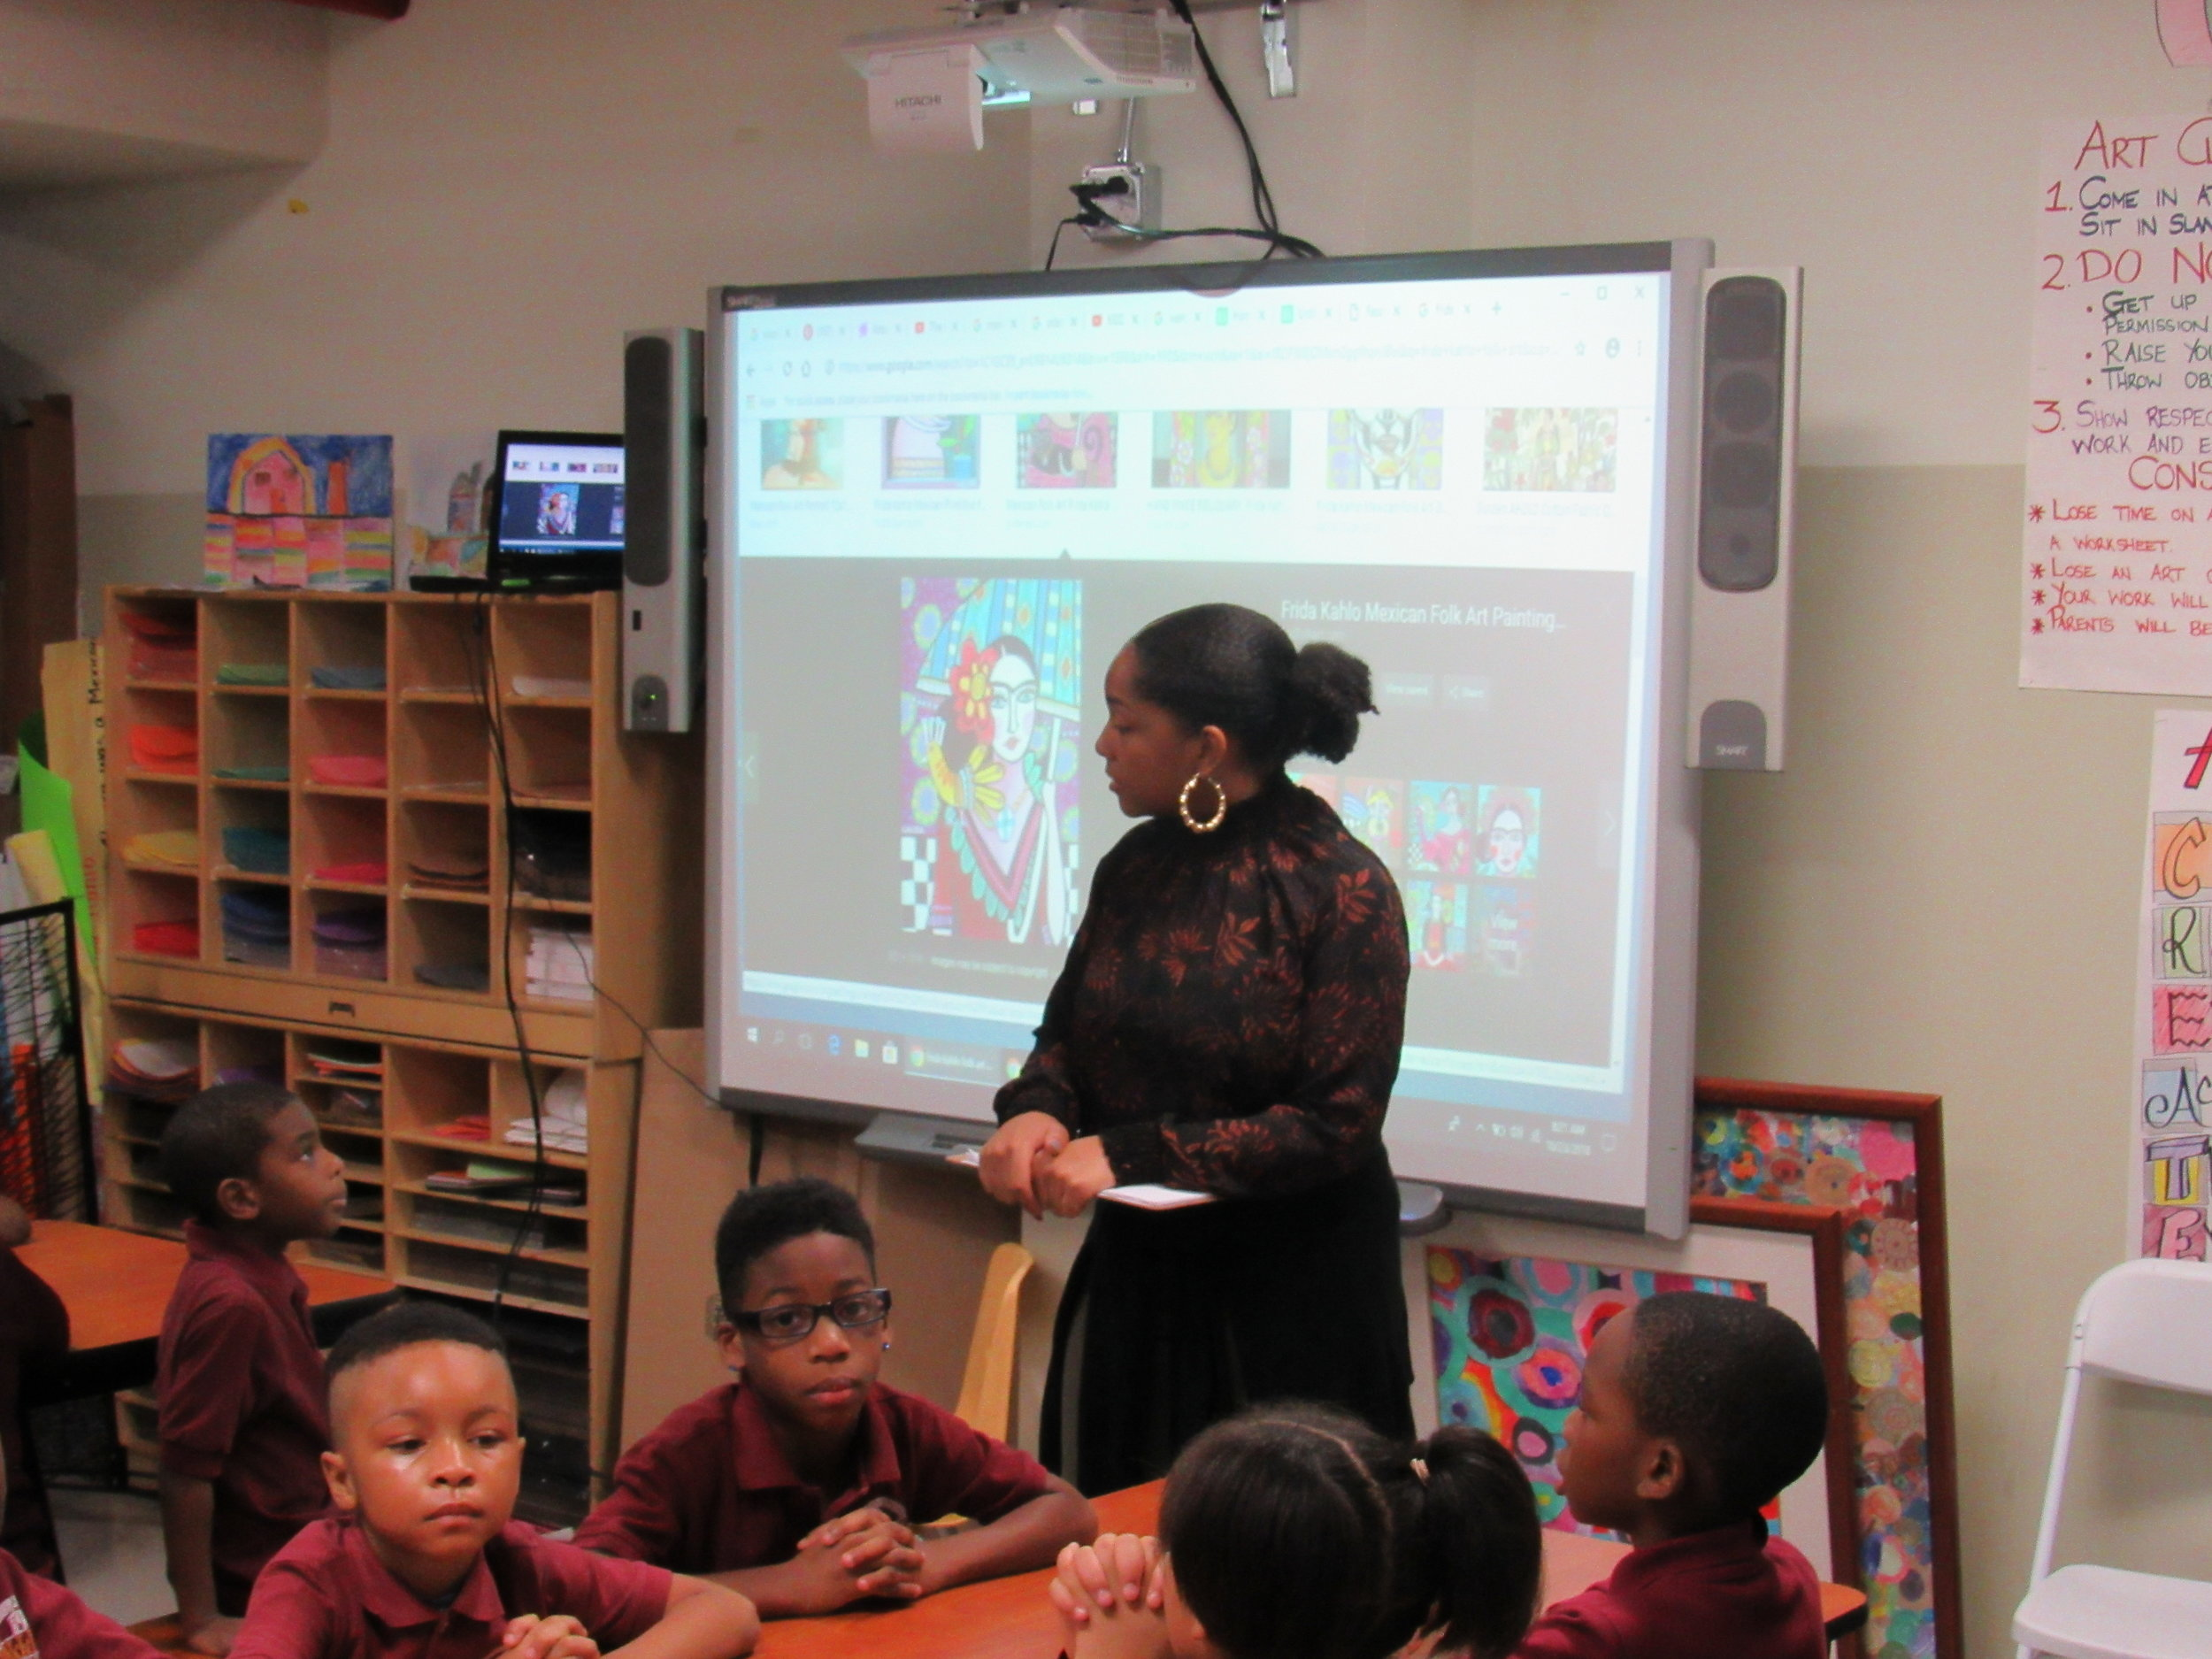 Ms. Gautier in the art room teaching our scholars.